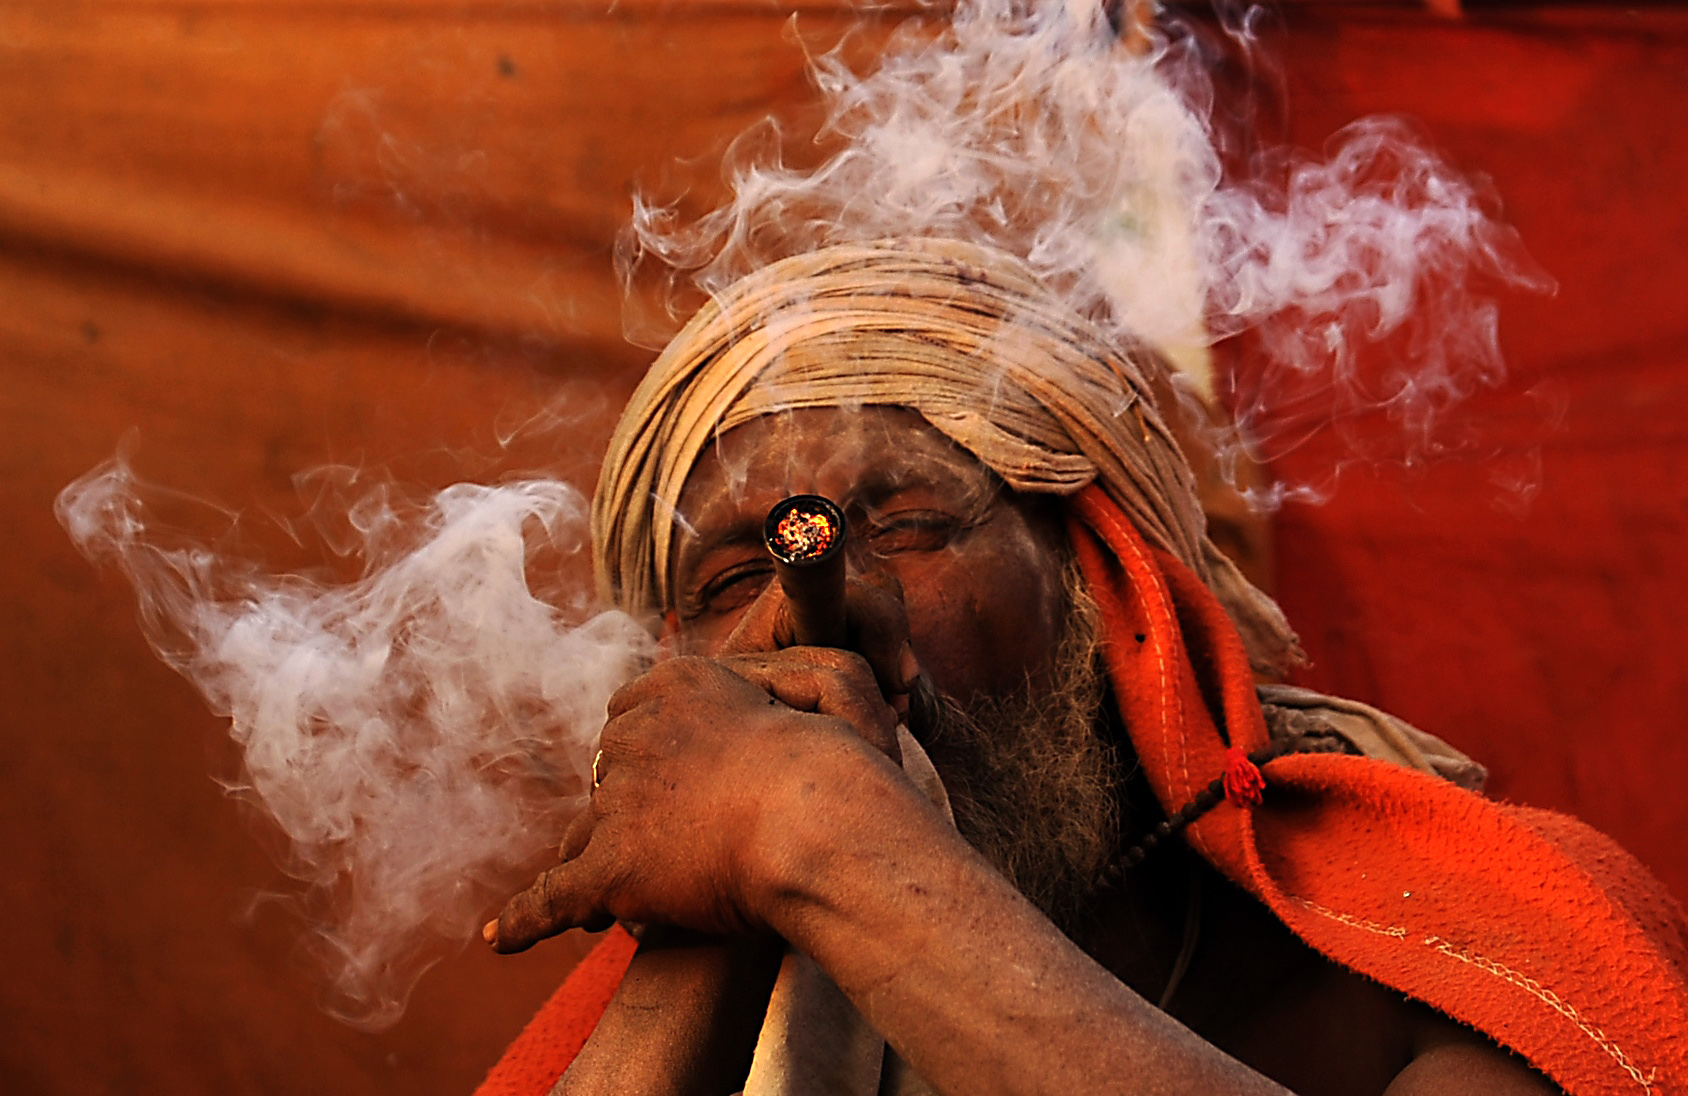 TOPSHOT - A Sadhu (Hindu holy man), smok...TOPSHOT - A Sadhu (Hindu holy man), smokes a chillum, a traditional clay pipe, as a holy offering to Lord Shiva, the Hindu god of creation and destruction near the Pashupatinath Temple in Kathmandu on March 6, 2016, on the eve of the Hindu festival Maha Shivaratri. Hindus mark the Maha Shivratri festival by offering special prayers and fasting.  / AFP / PRAKASH MATHEMAPRAKASH MATHEMA/AFP/Getty Images